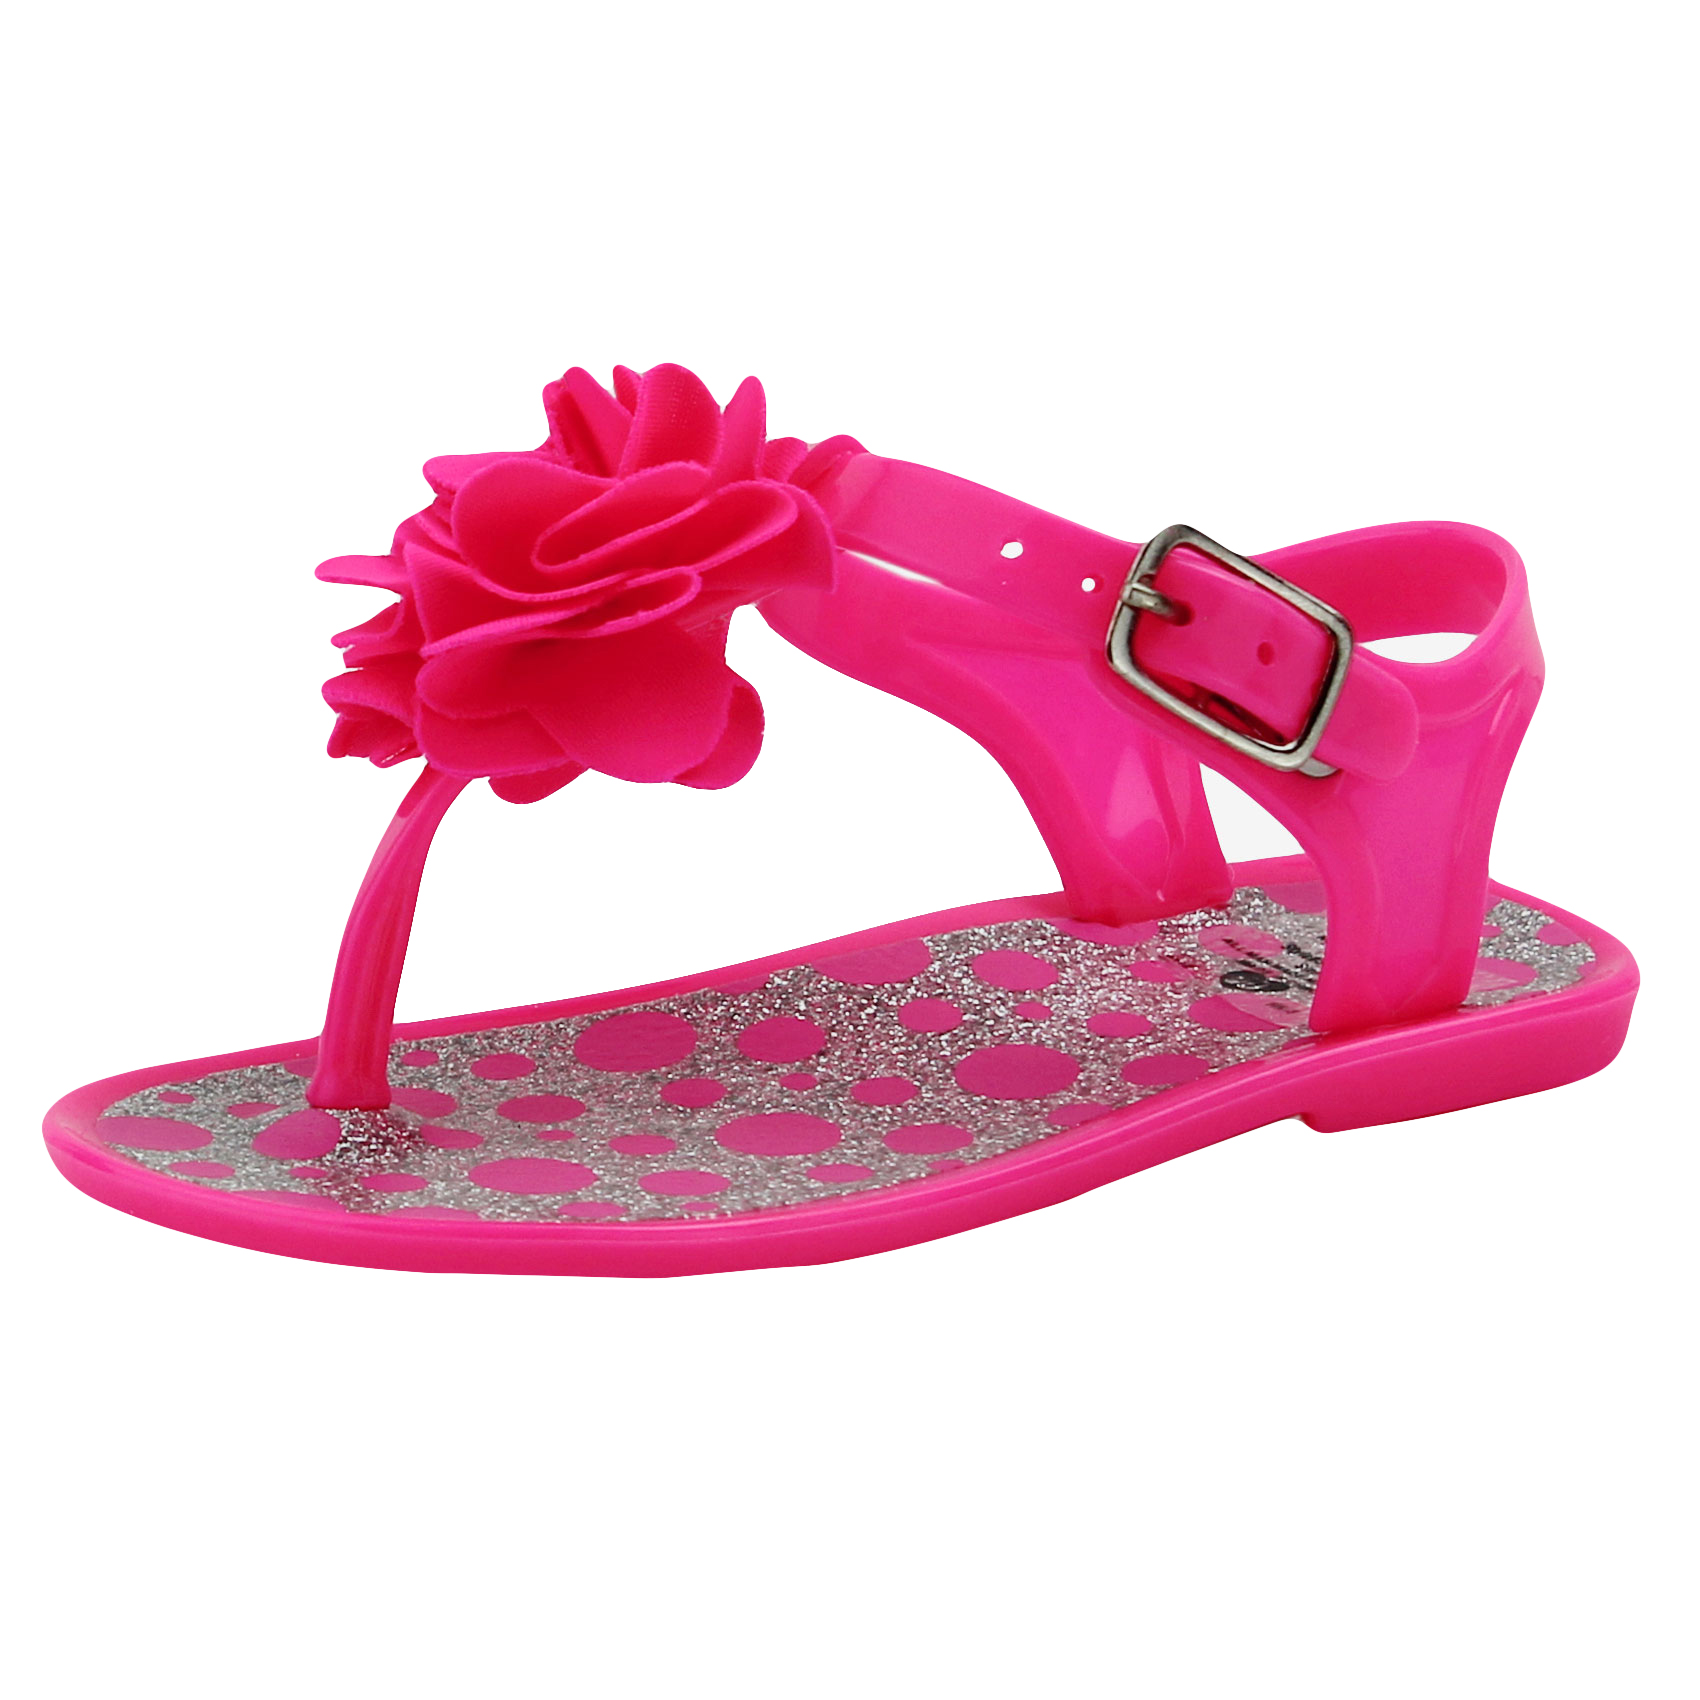 a49b3f4e2b1f7d Stepping Stones Baby Girls Hot Pink Polka Dot Glitter Flower Thong Sandal   Jelly  Sandals with Backs-Size 6 Infant Toddler Flip Flops For Causal or Dress